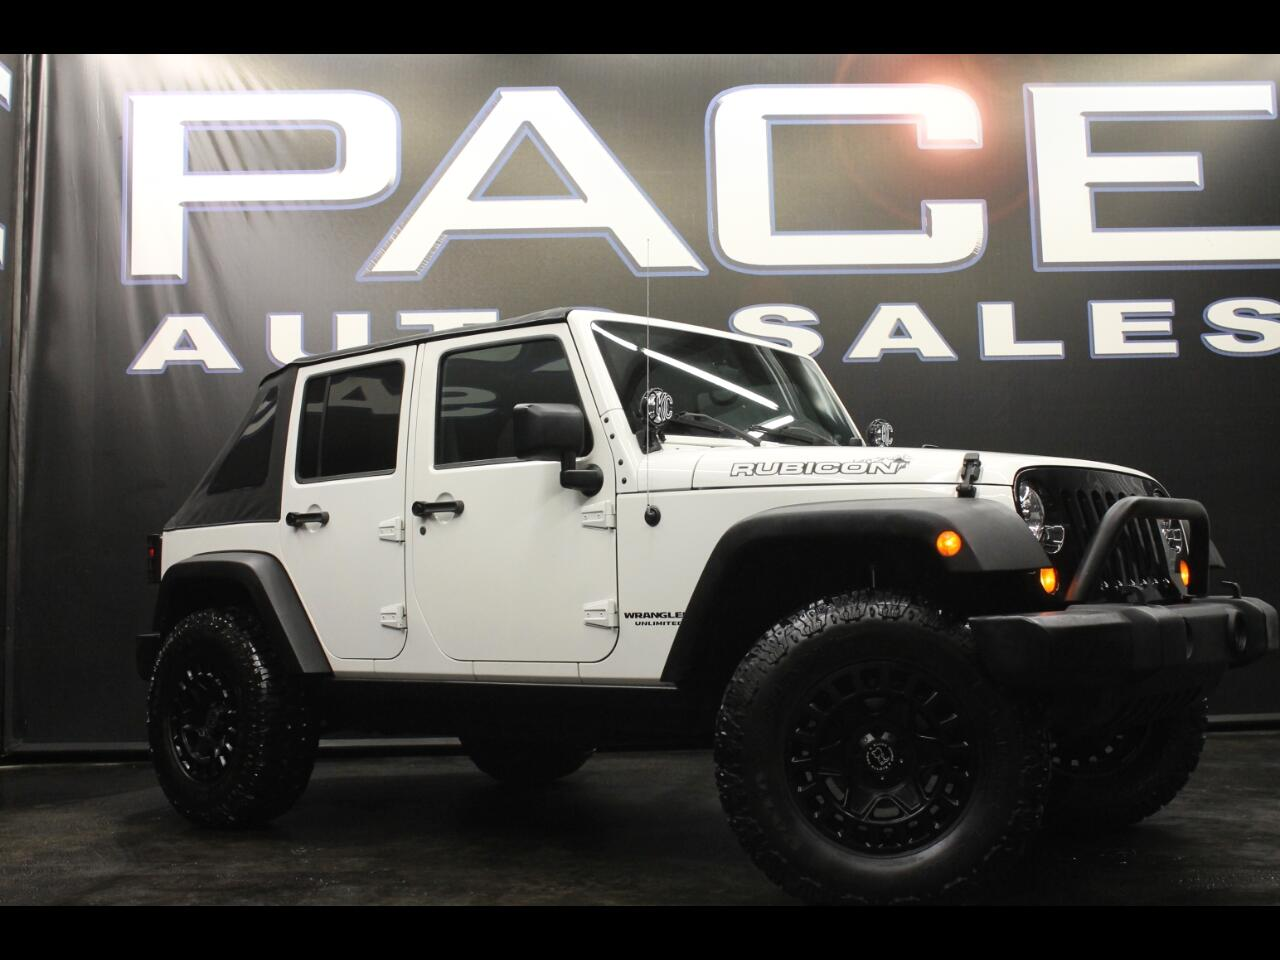 2007 Jeep Wrangler Unlimited 4WD Rubicon Lifted Custom